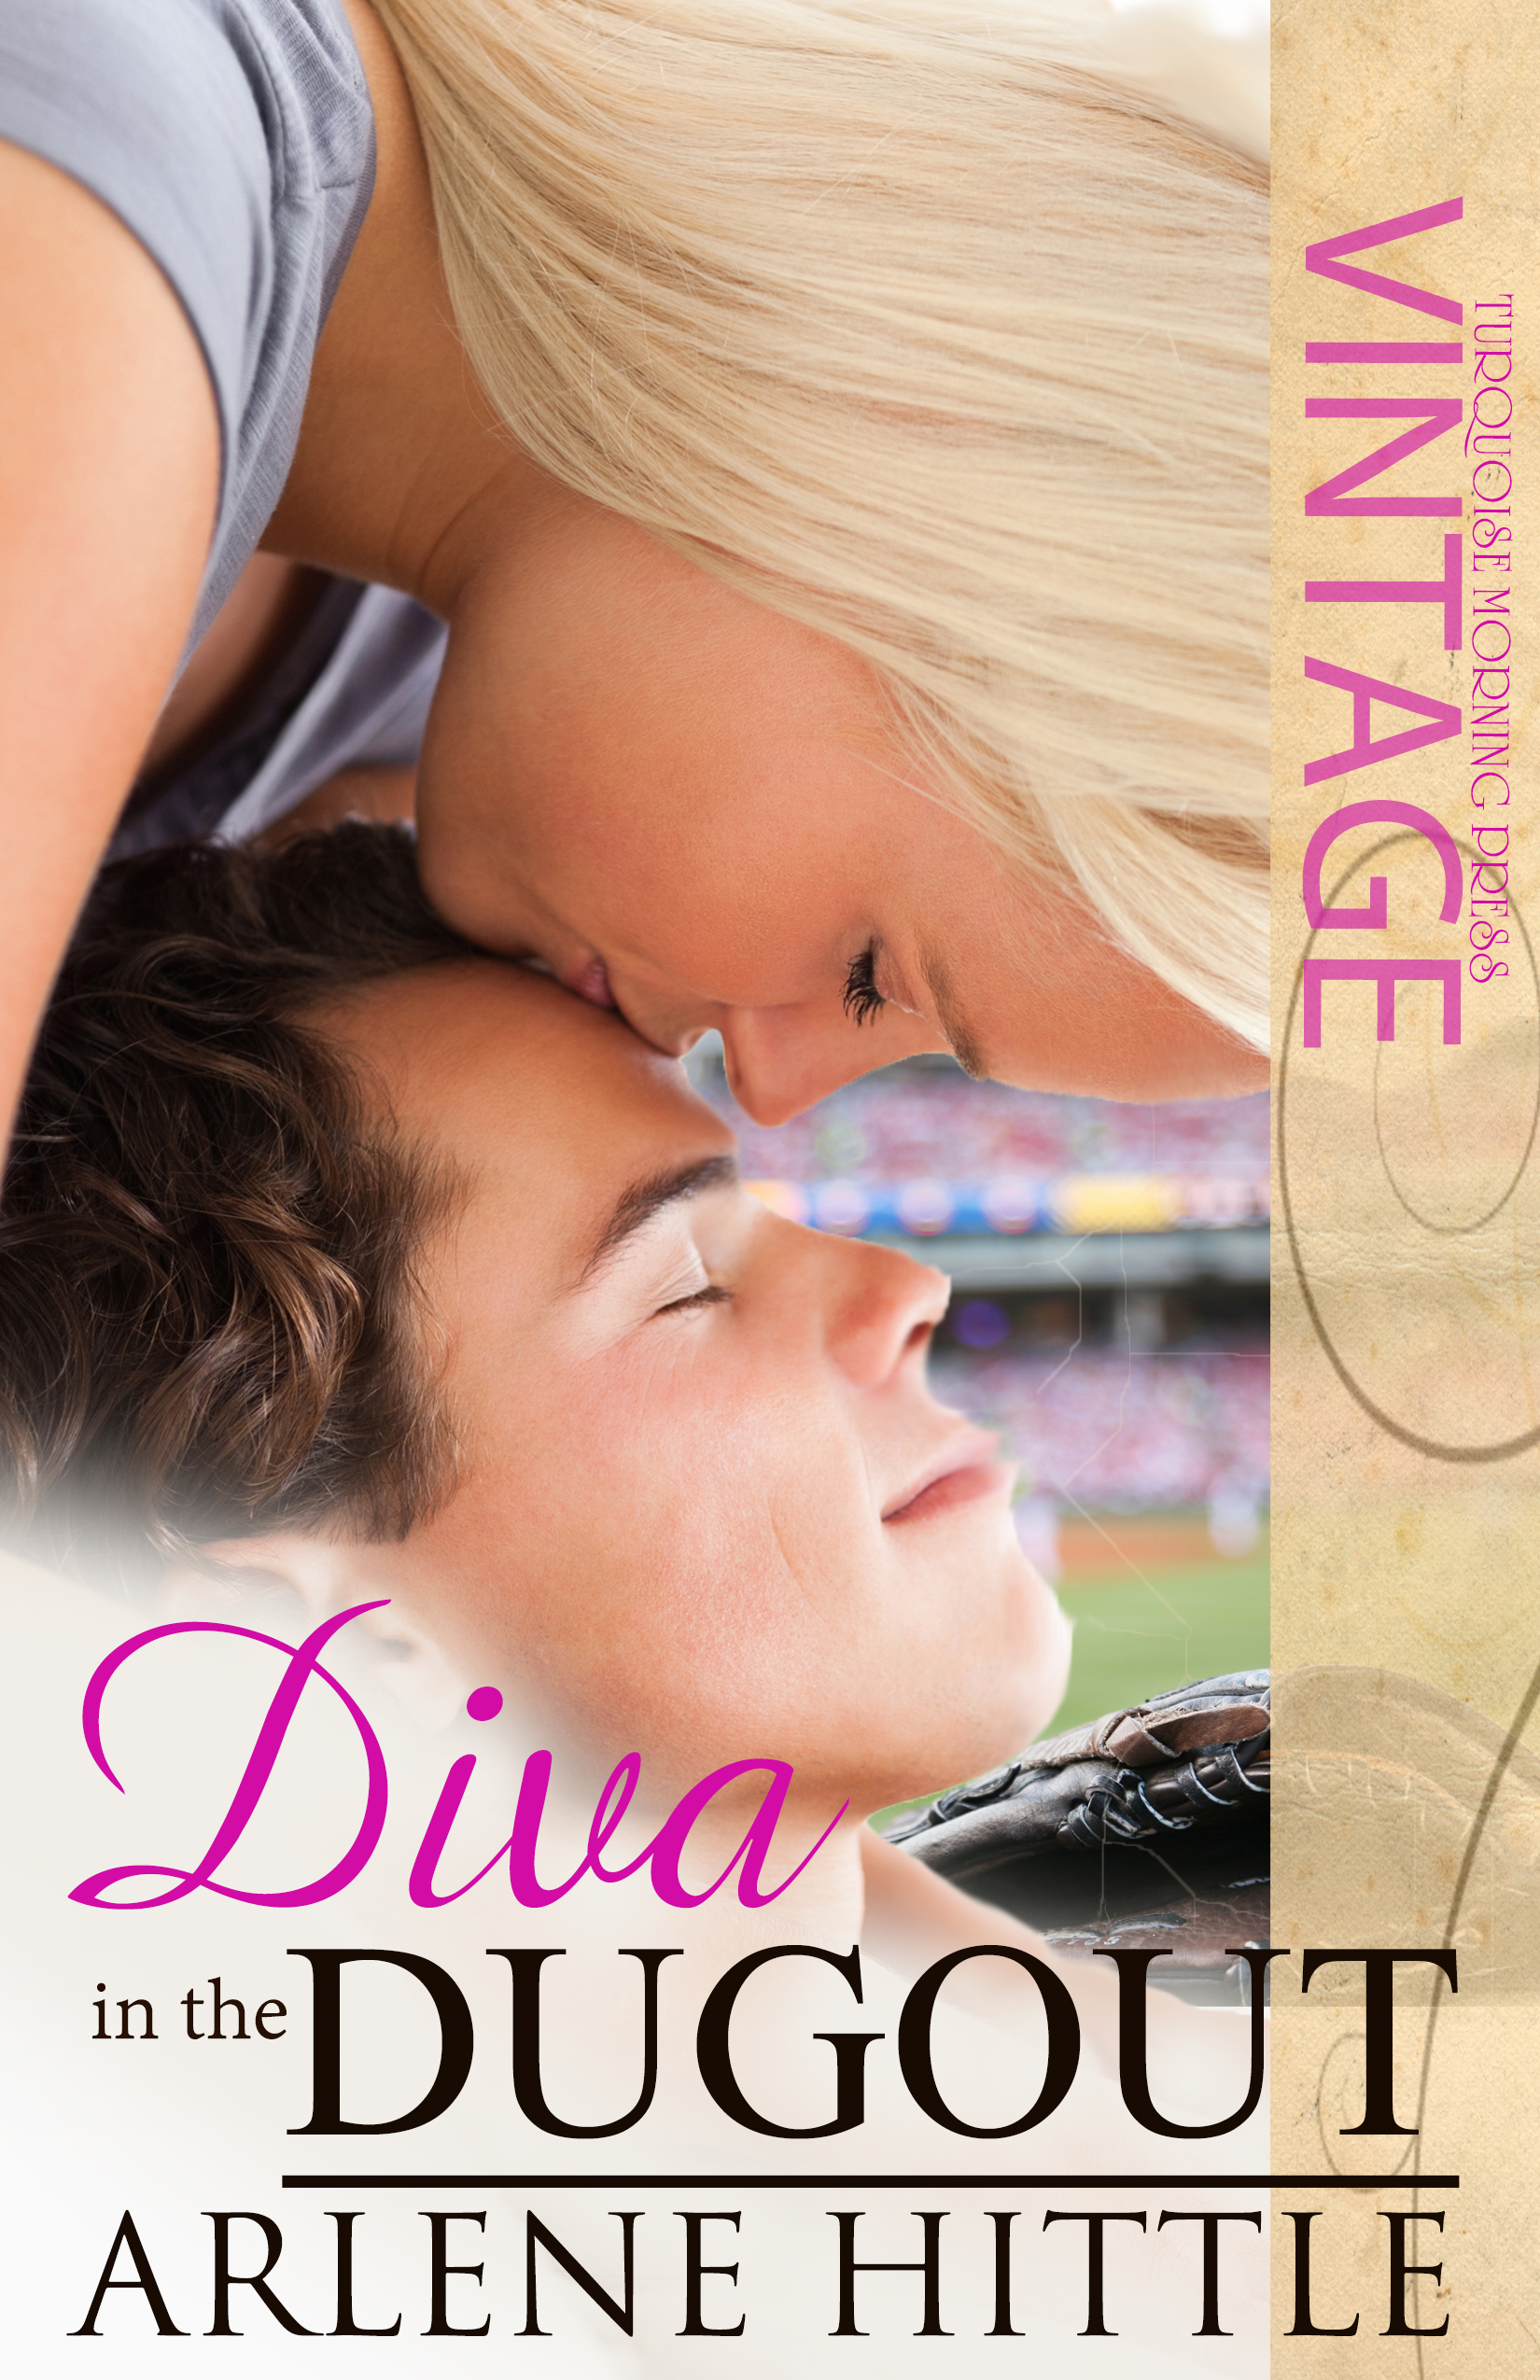 Arlene Hittle - Diva in the Dugout